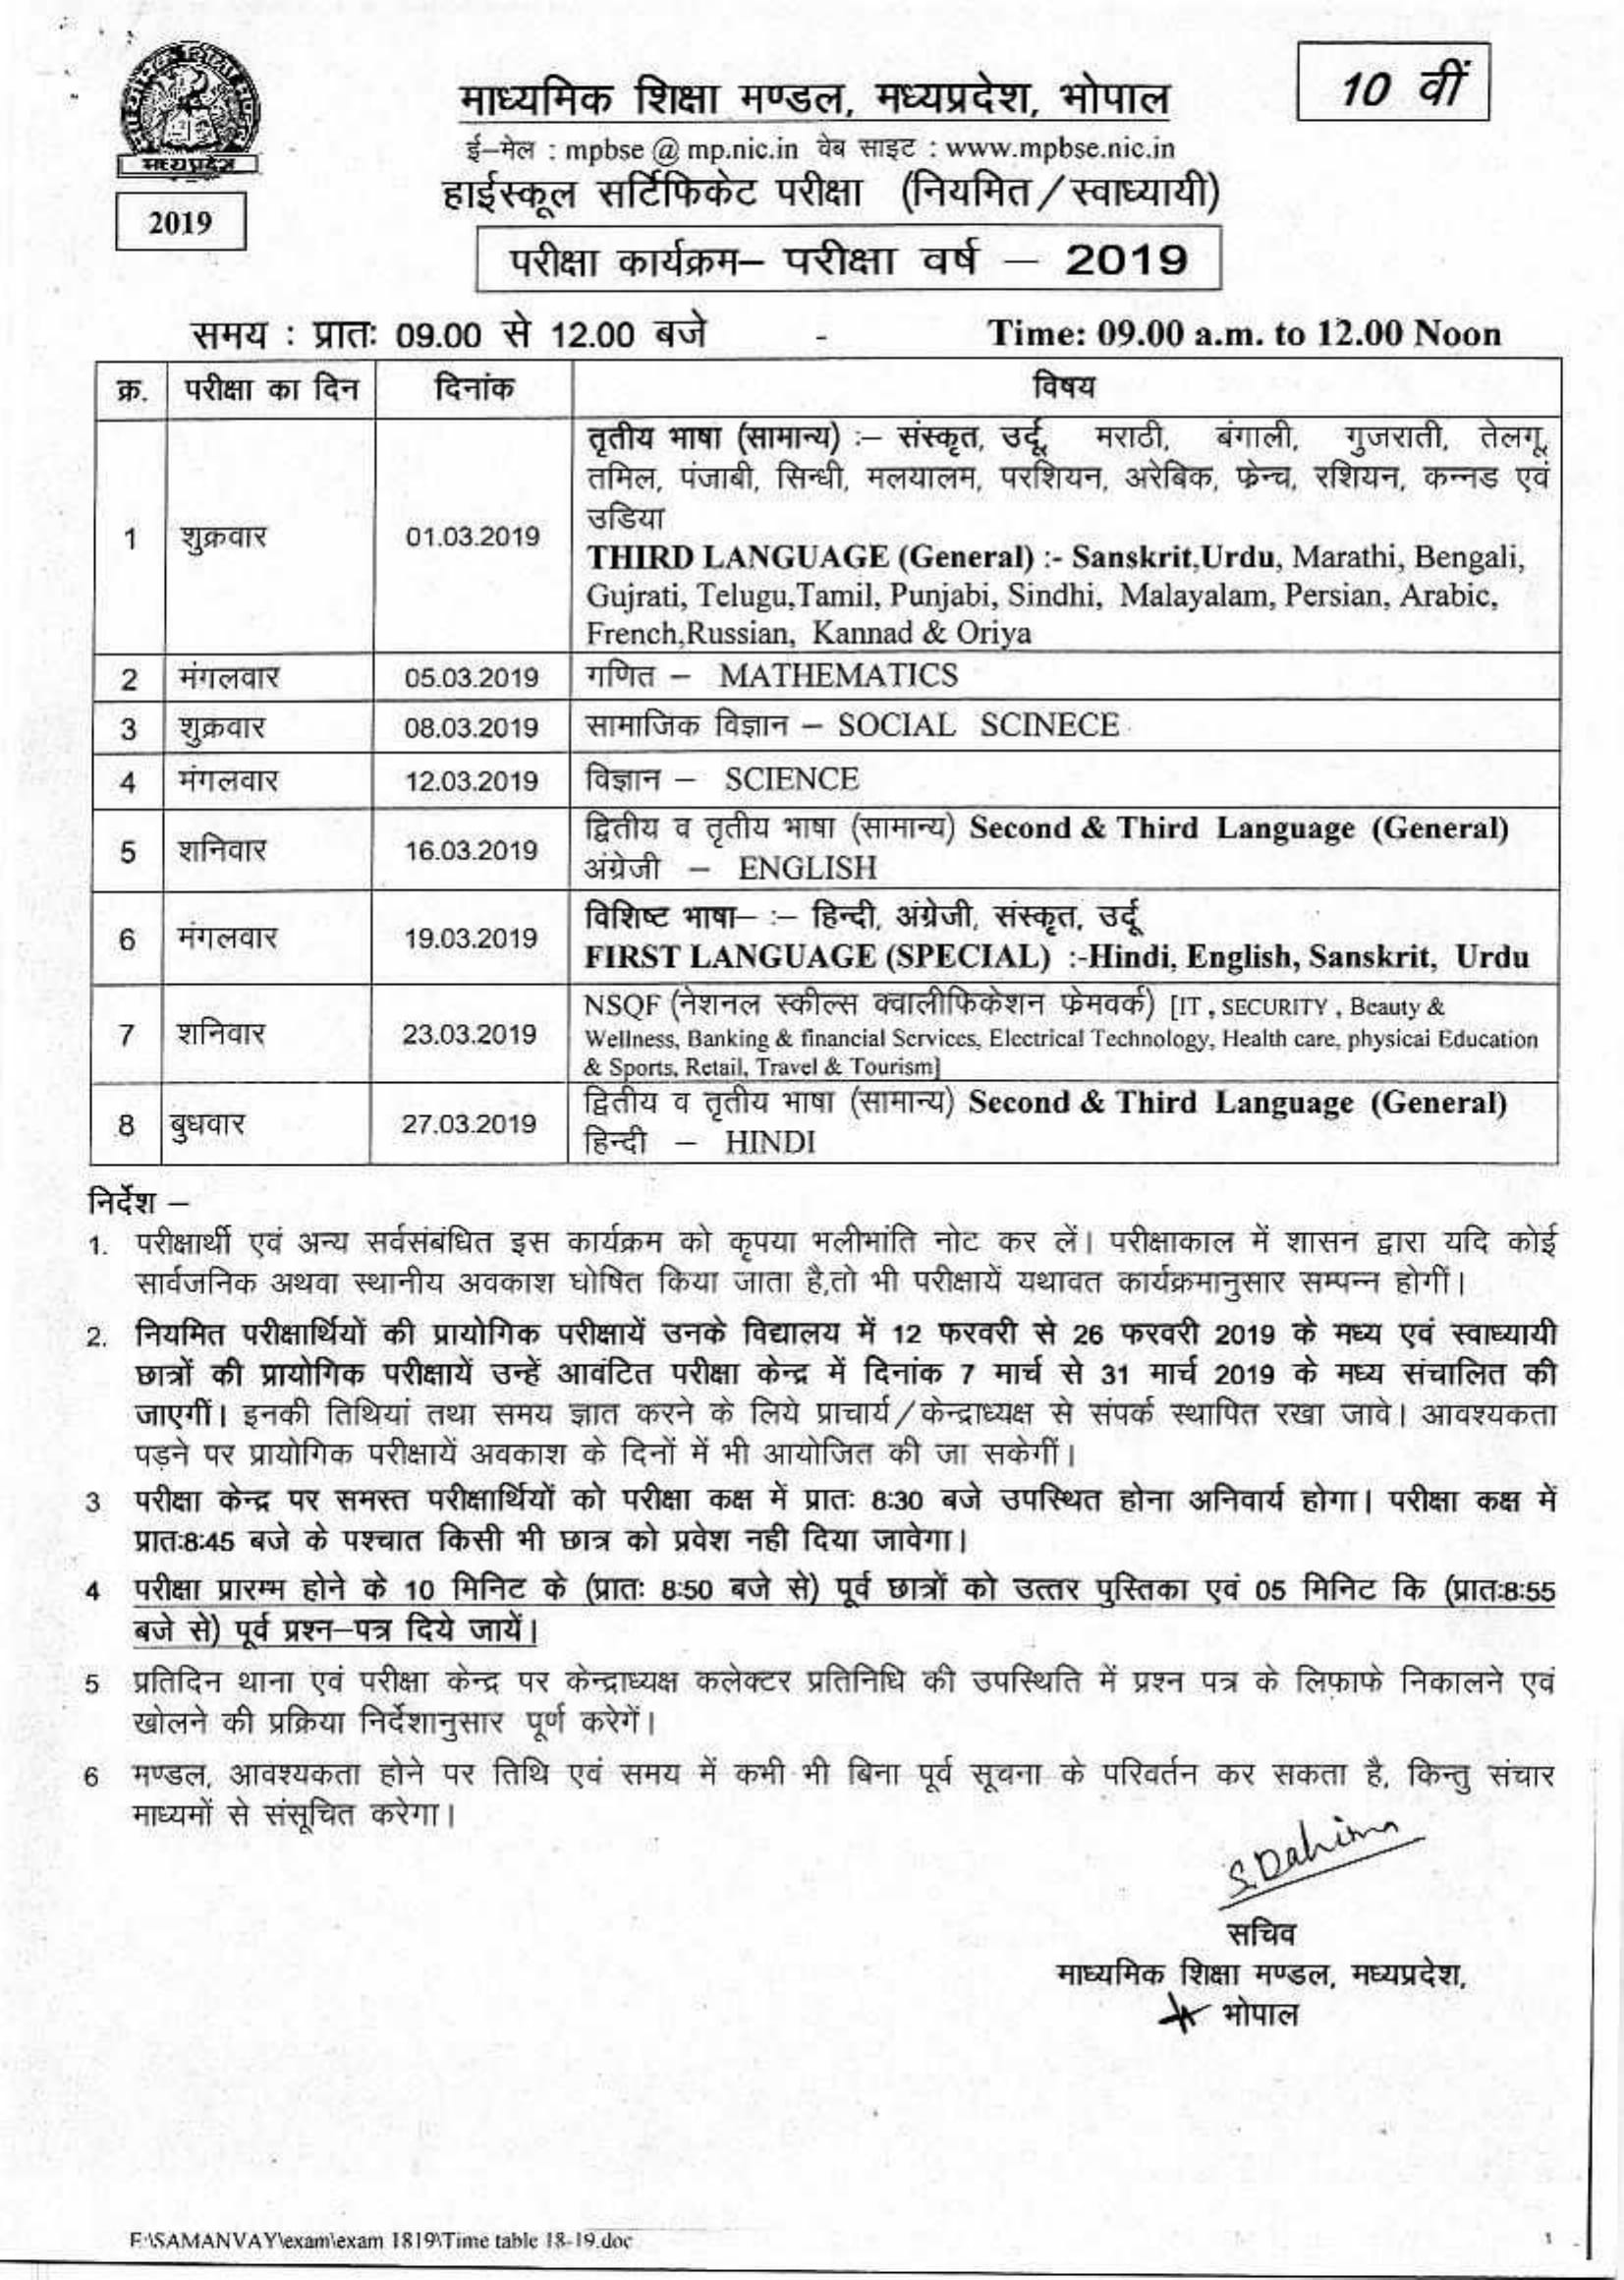 MPBSE Class 10th Time Table 2019, MP Board SSC Time Table